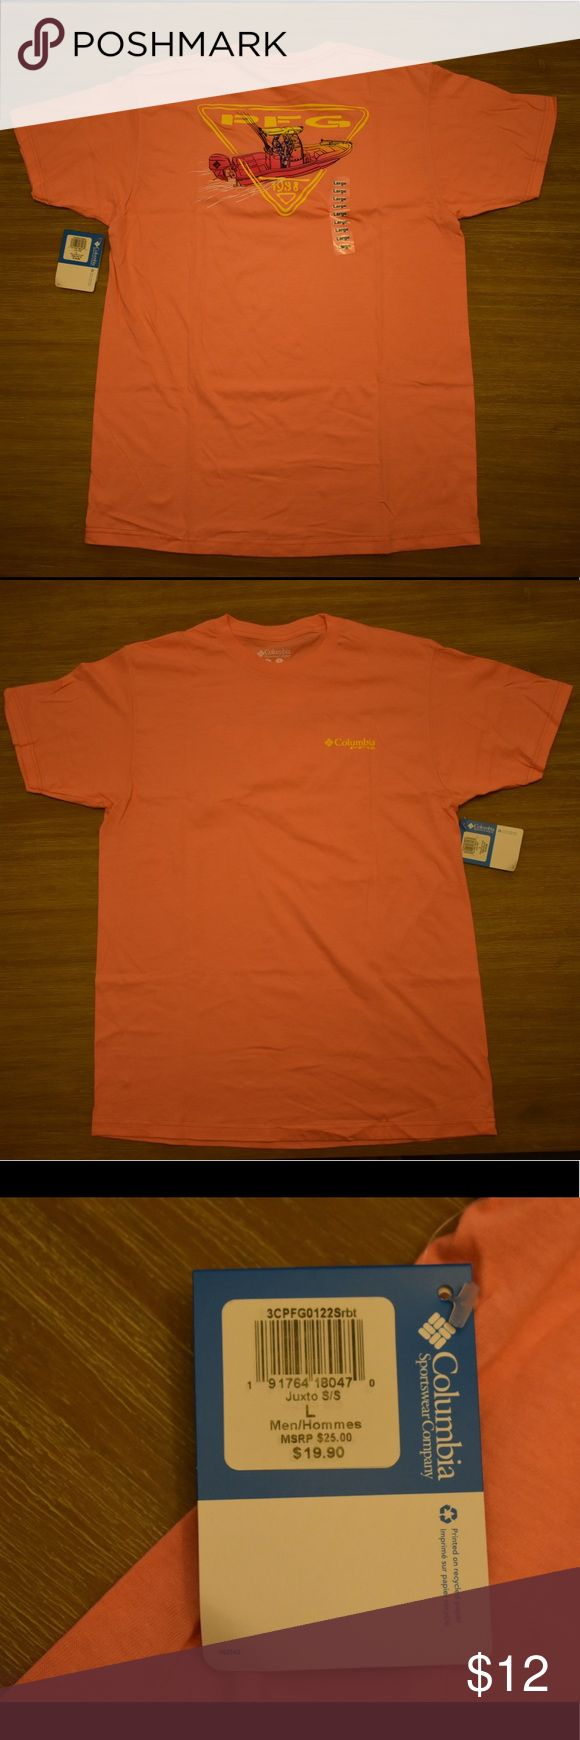 Columbia PFG Shirt Brand new never worn, Tags are still on the item. 100% authentic, I am a wholesale buyer of Columbia. If any questions please comment below. Columbia Shirts Tees - Short Sleeve